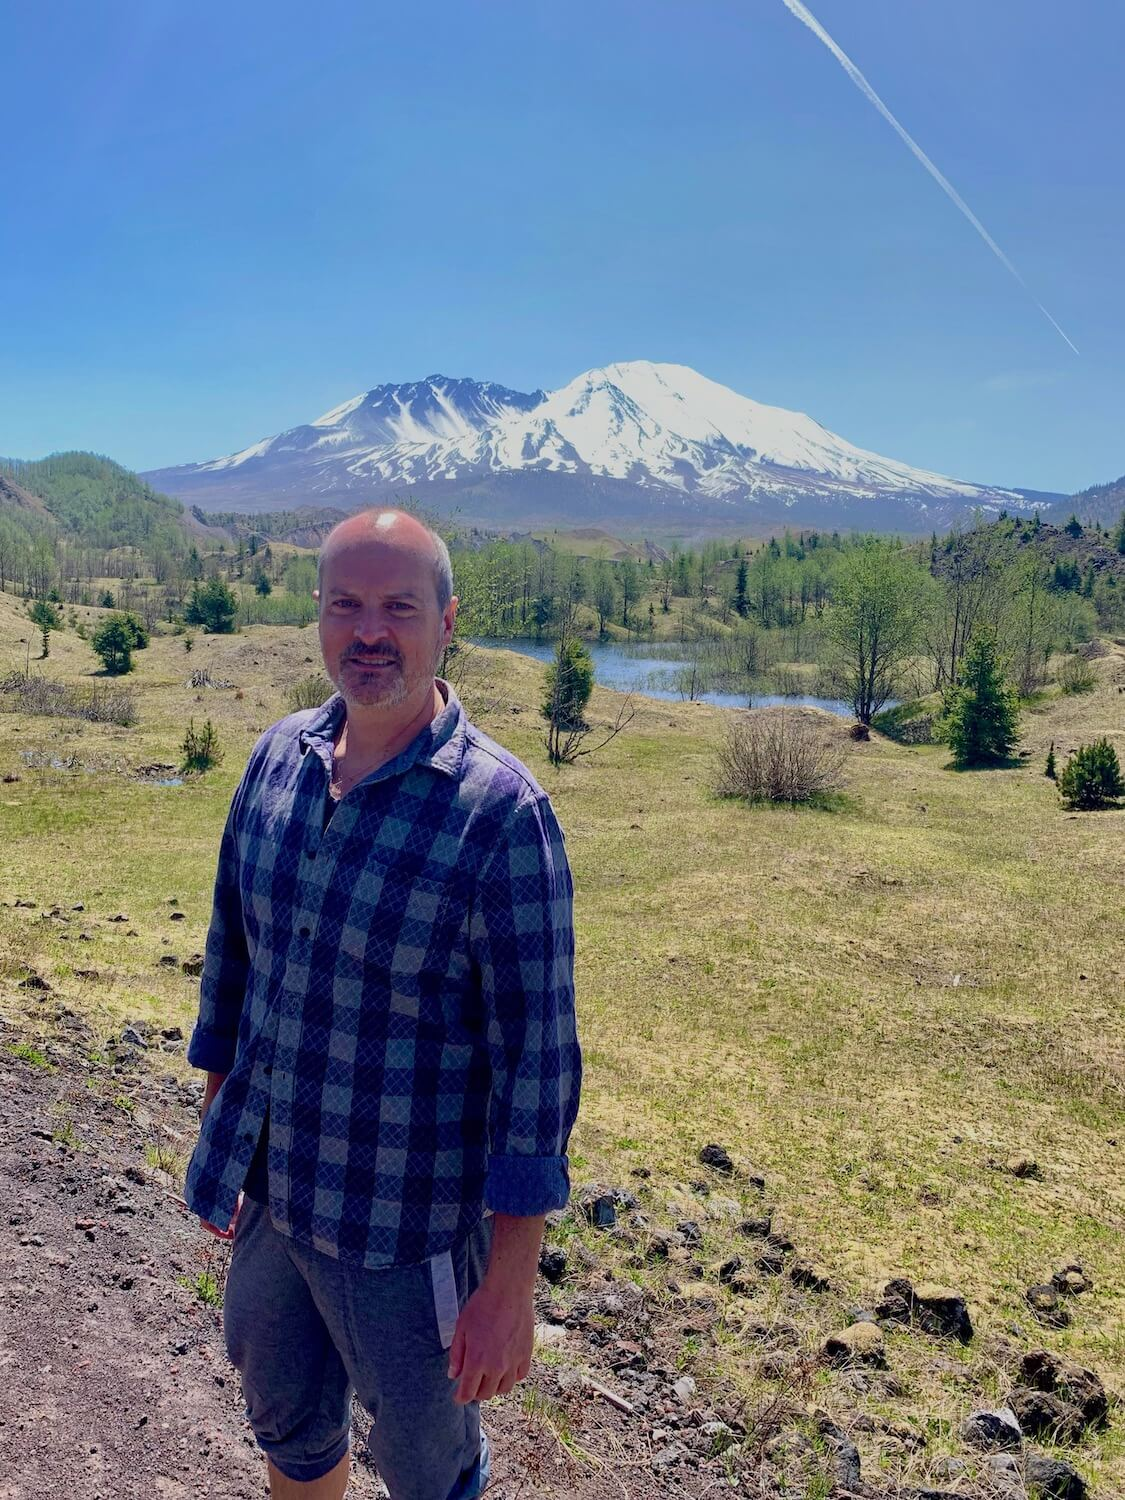 Selfie of Matthew Kessi n front of a mountain lake surrounded by Low green cover brush and alders.  Snow covered Mt. St. Helens rises up in the background with a blue sky.